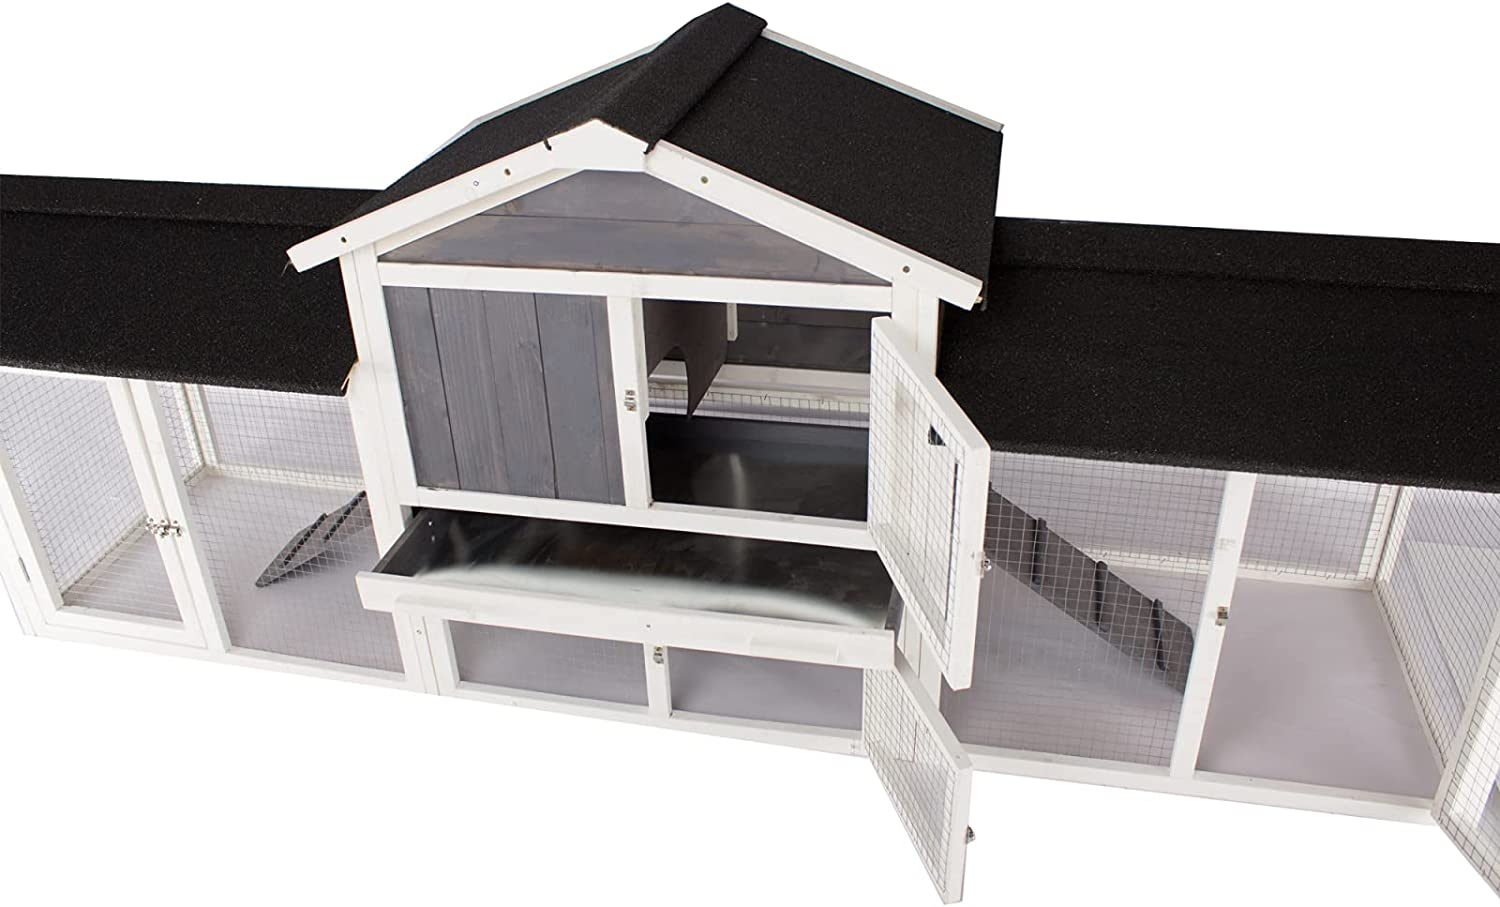 Lazyspace Rabbit Detroit Mall Hutch Pet House for Guinea Animals Pig Ho Small Direct sale of manufacturer